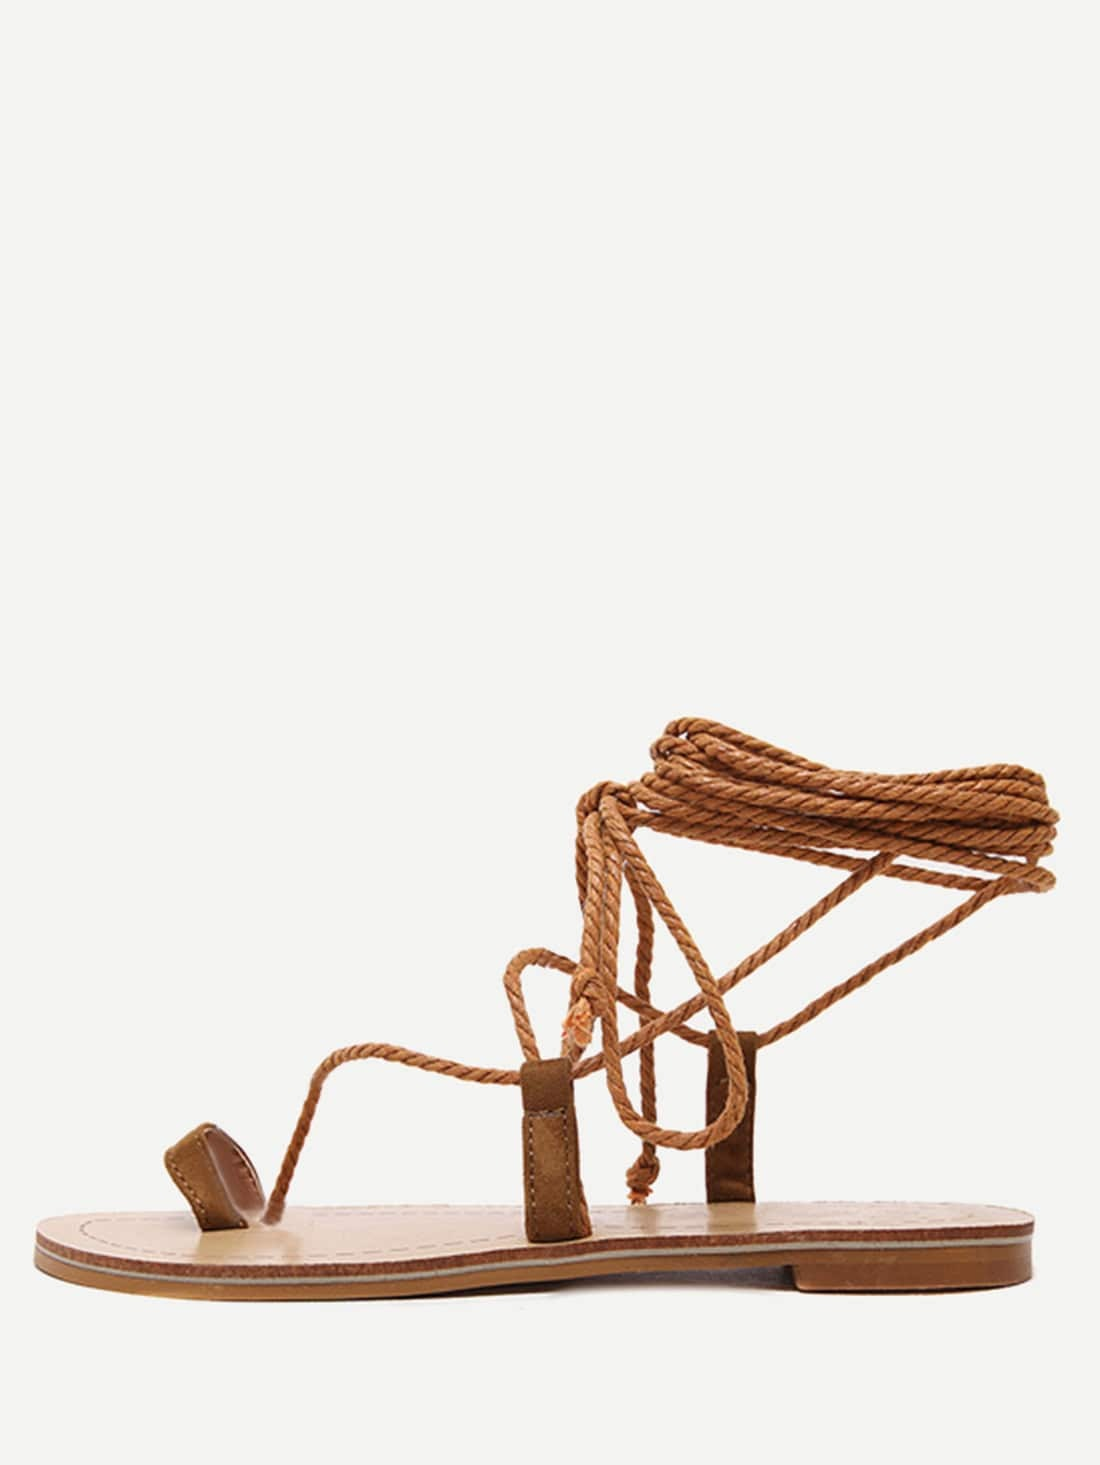 Toe-ring Lace Up Sandals shoes160527812